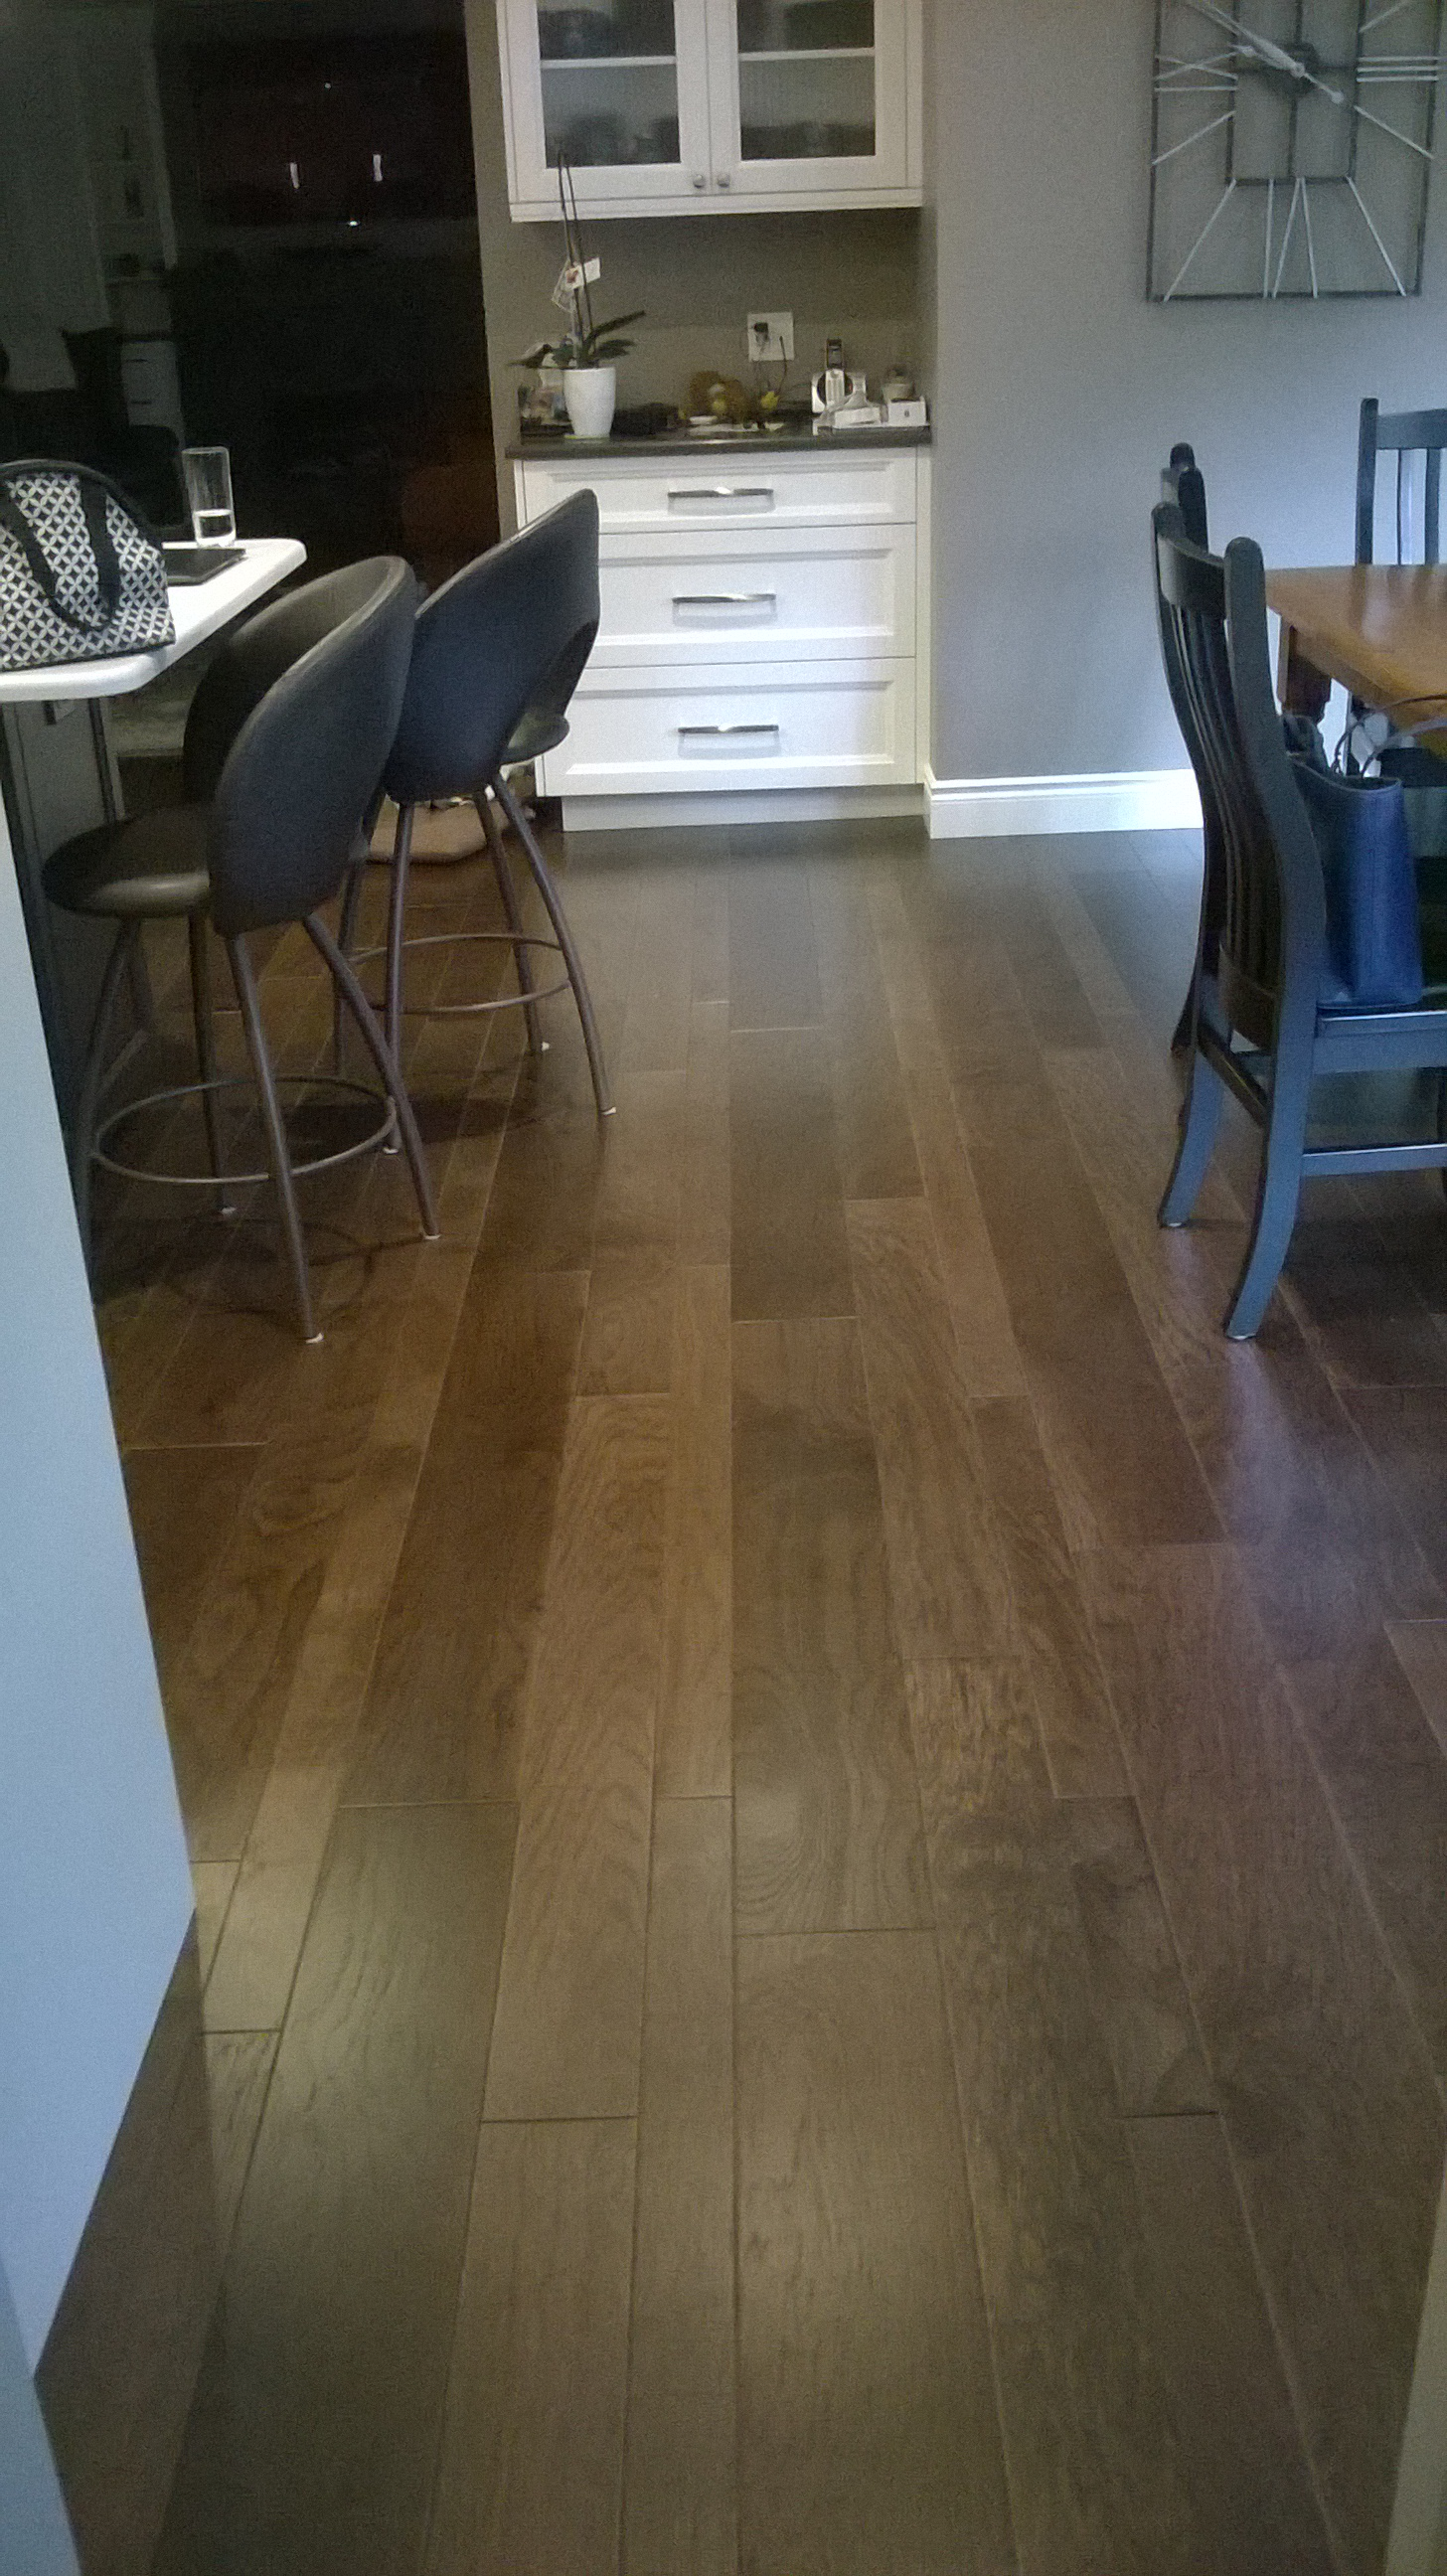 Hickory 7 5 3 Combo Engineered Hardwood Plank With Scuff Resist Platinum